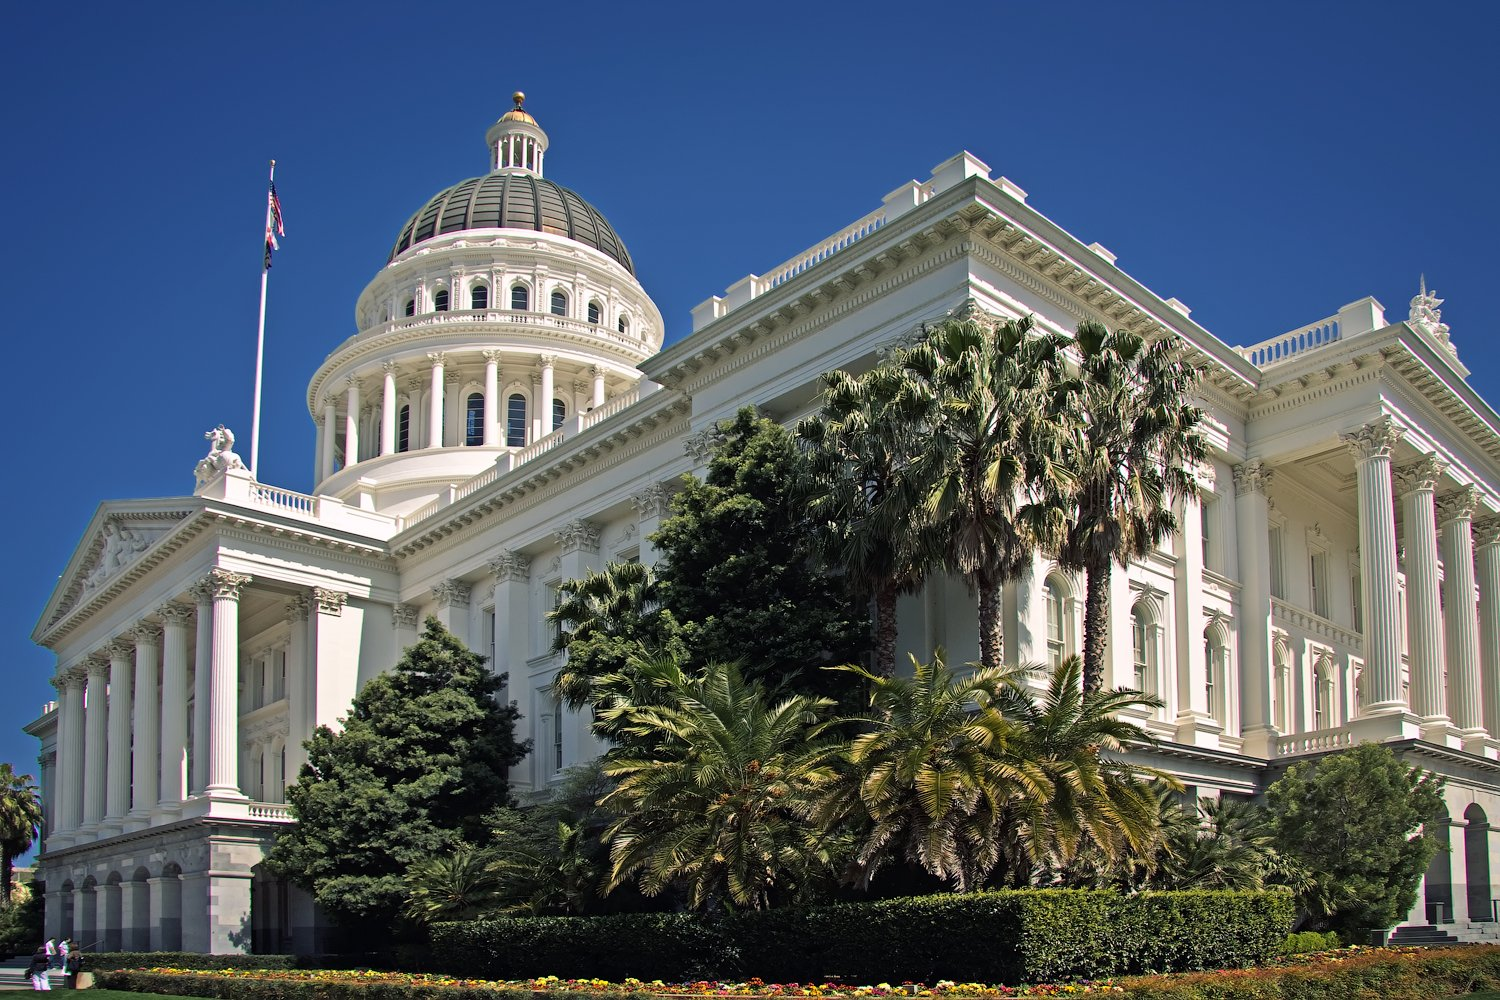 The California State Capitol Museum is housed inside the historic Capitol building, which is designed in the neoclassical style with large columns and a dome. Wikimedia, Steven Pavlov.